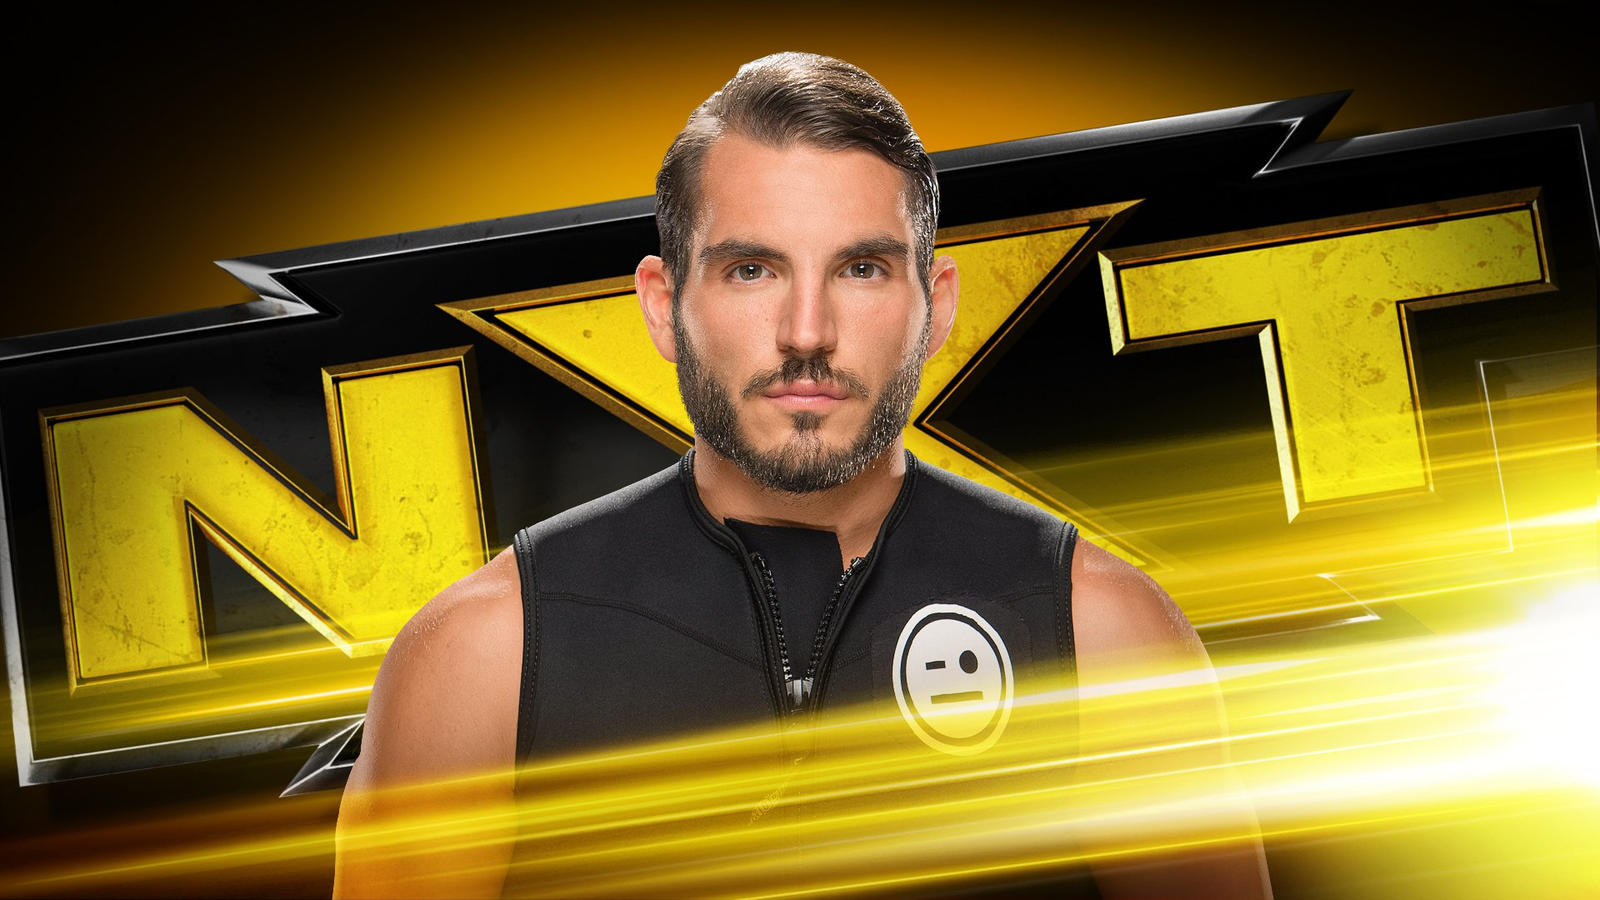 Wwe nxt preview july 12 2017 johnny gargano returns more than seven weeks after he was ruthlessly attacked by his own tag team partner at takeover